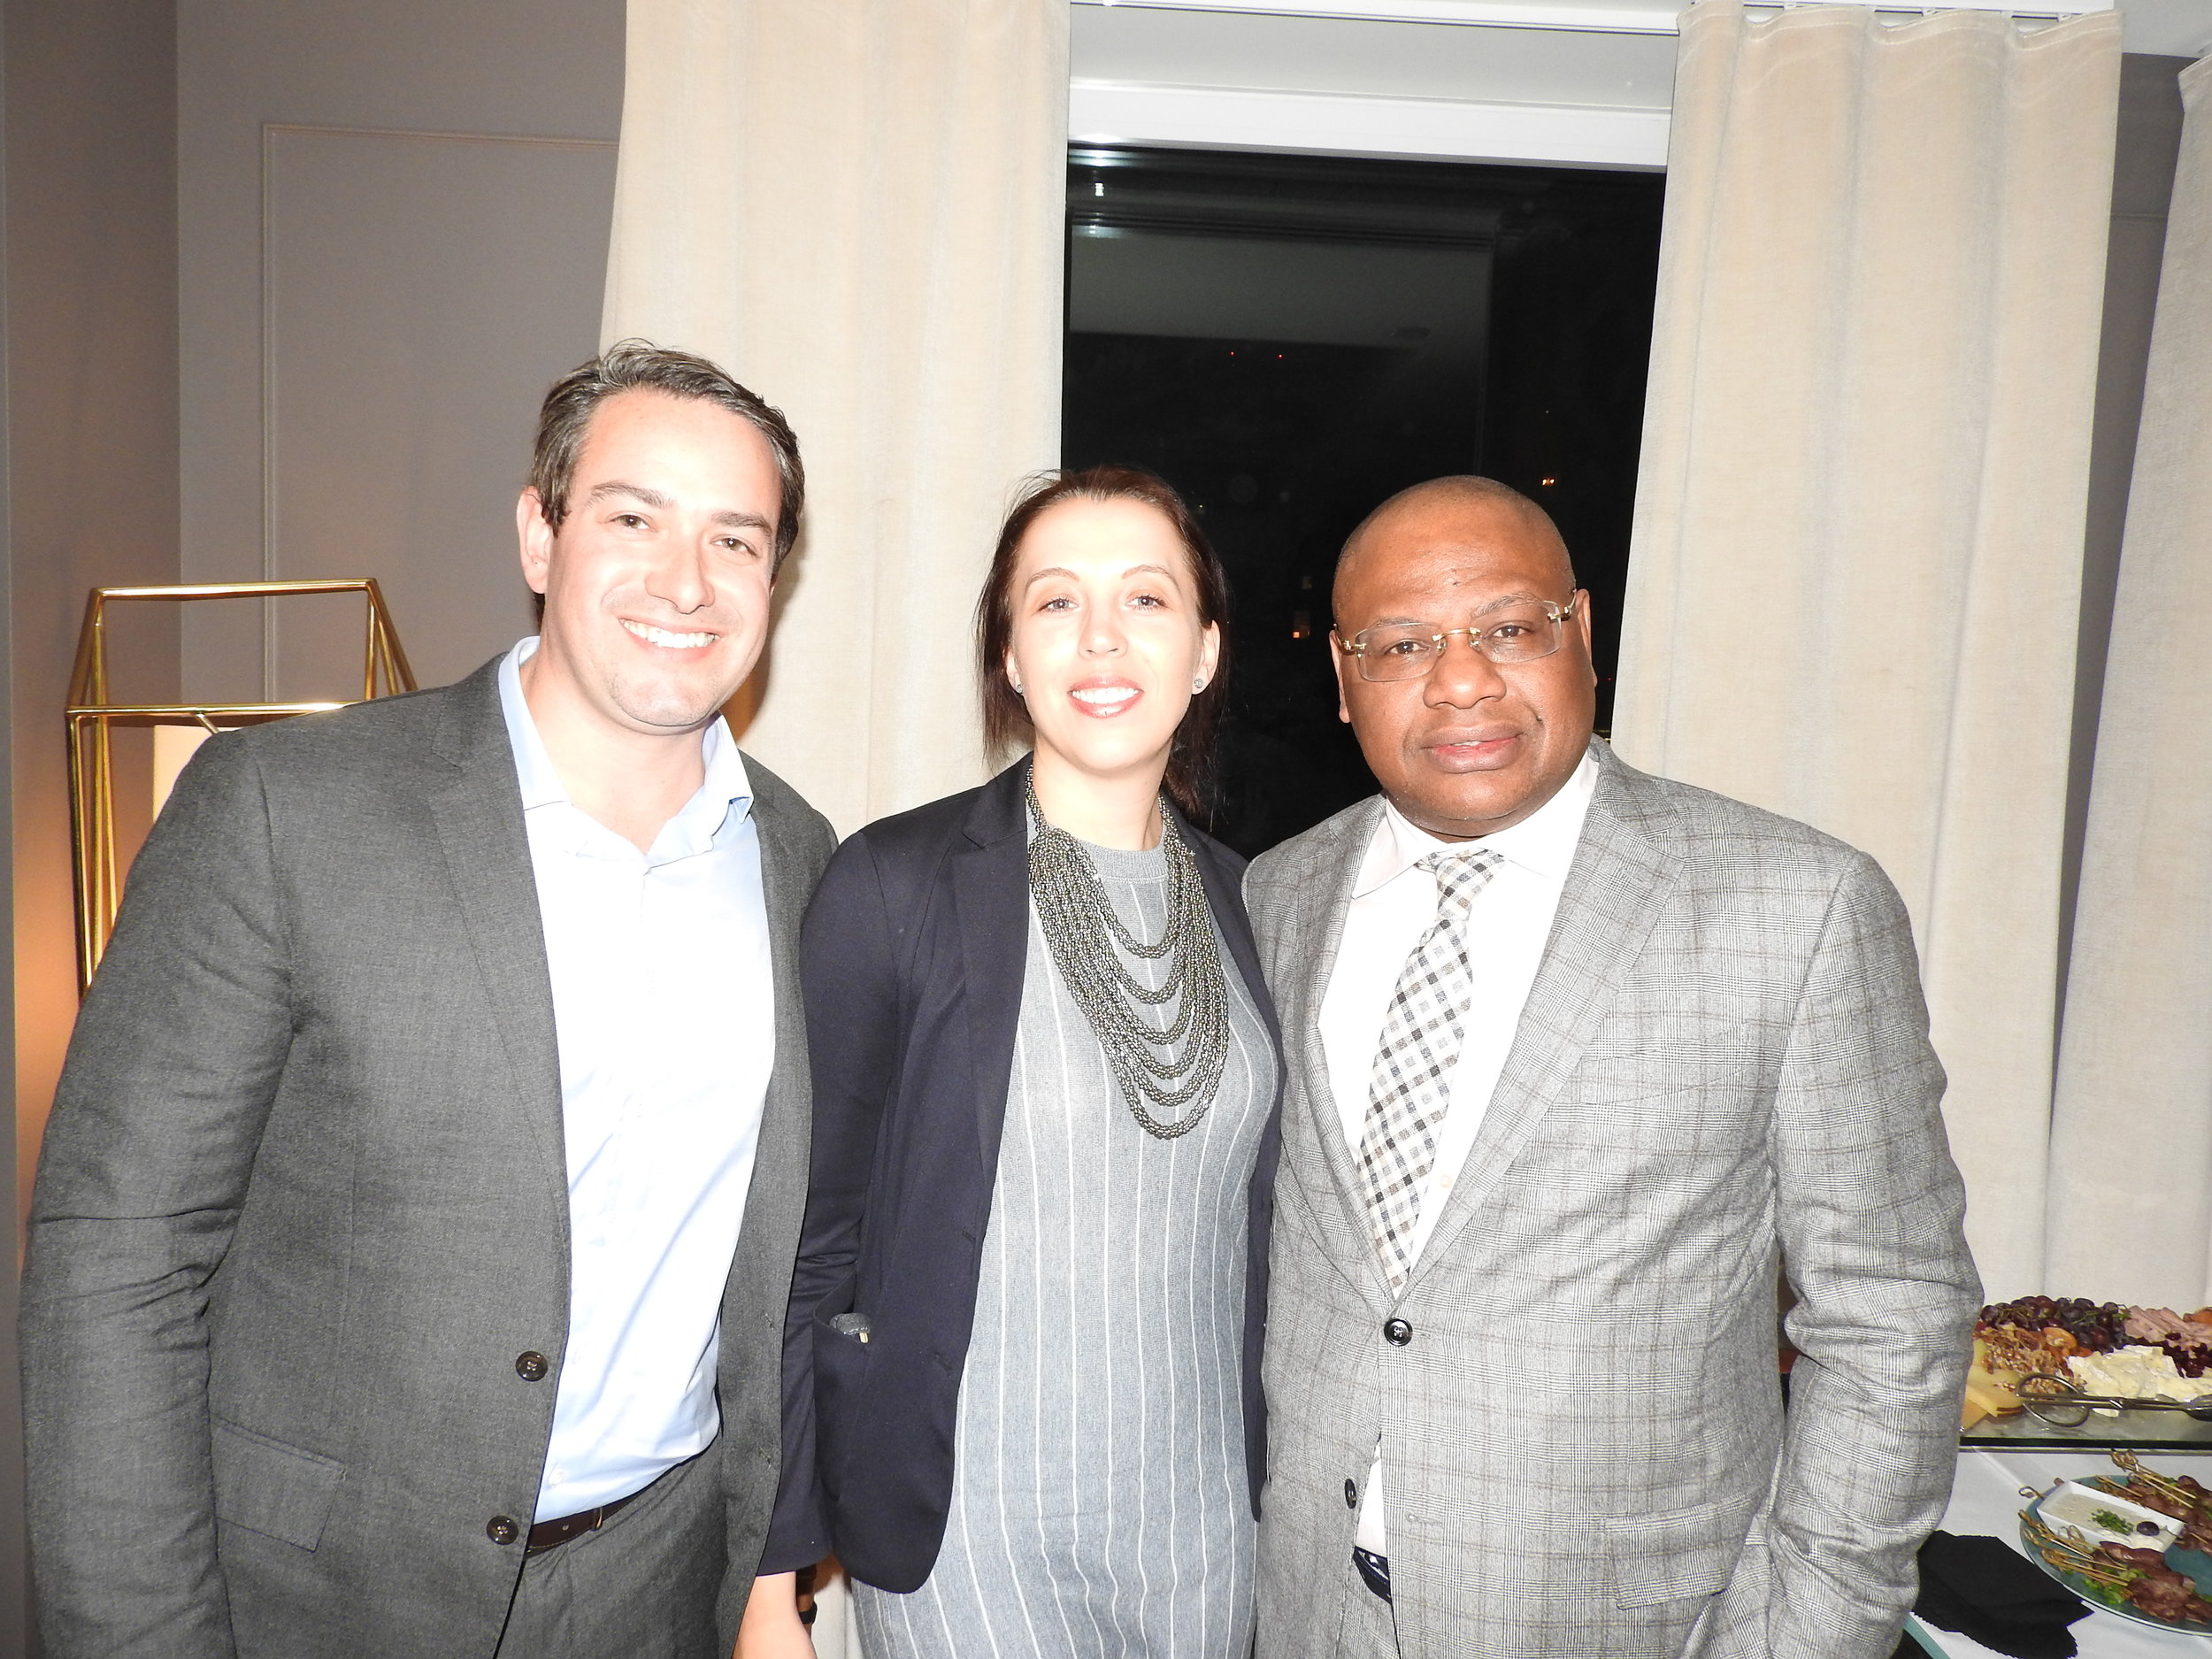 L to R: Steven Grin (Lateral Capital), Aubrey Hruby (Board member), Paul Trustfull (Board member)